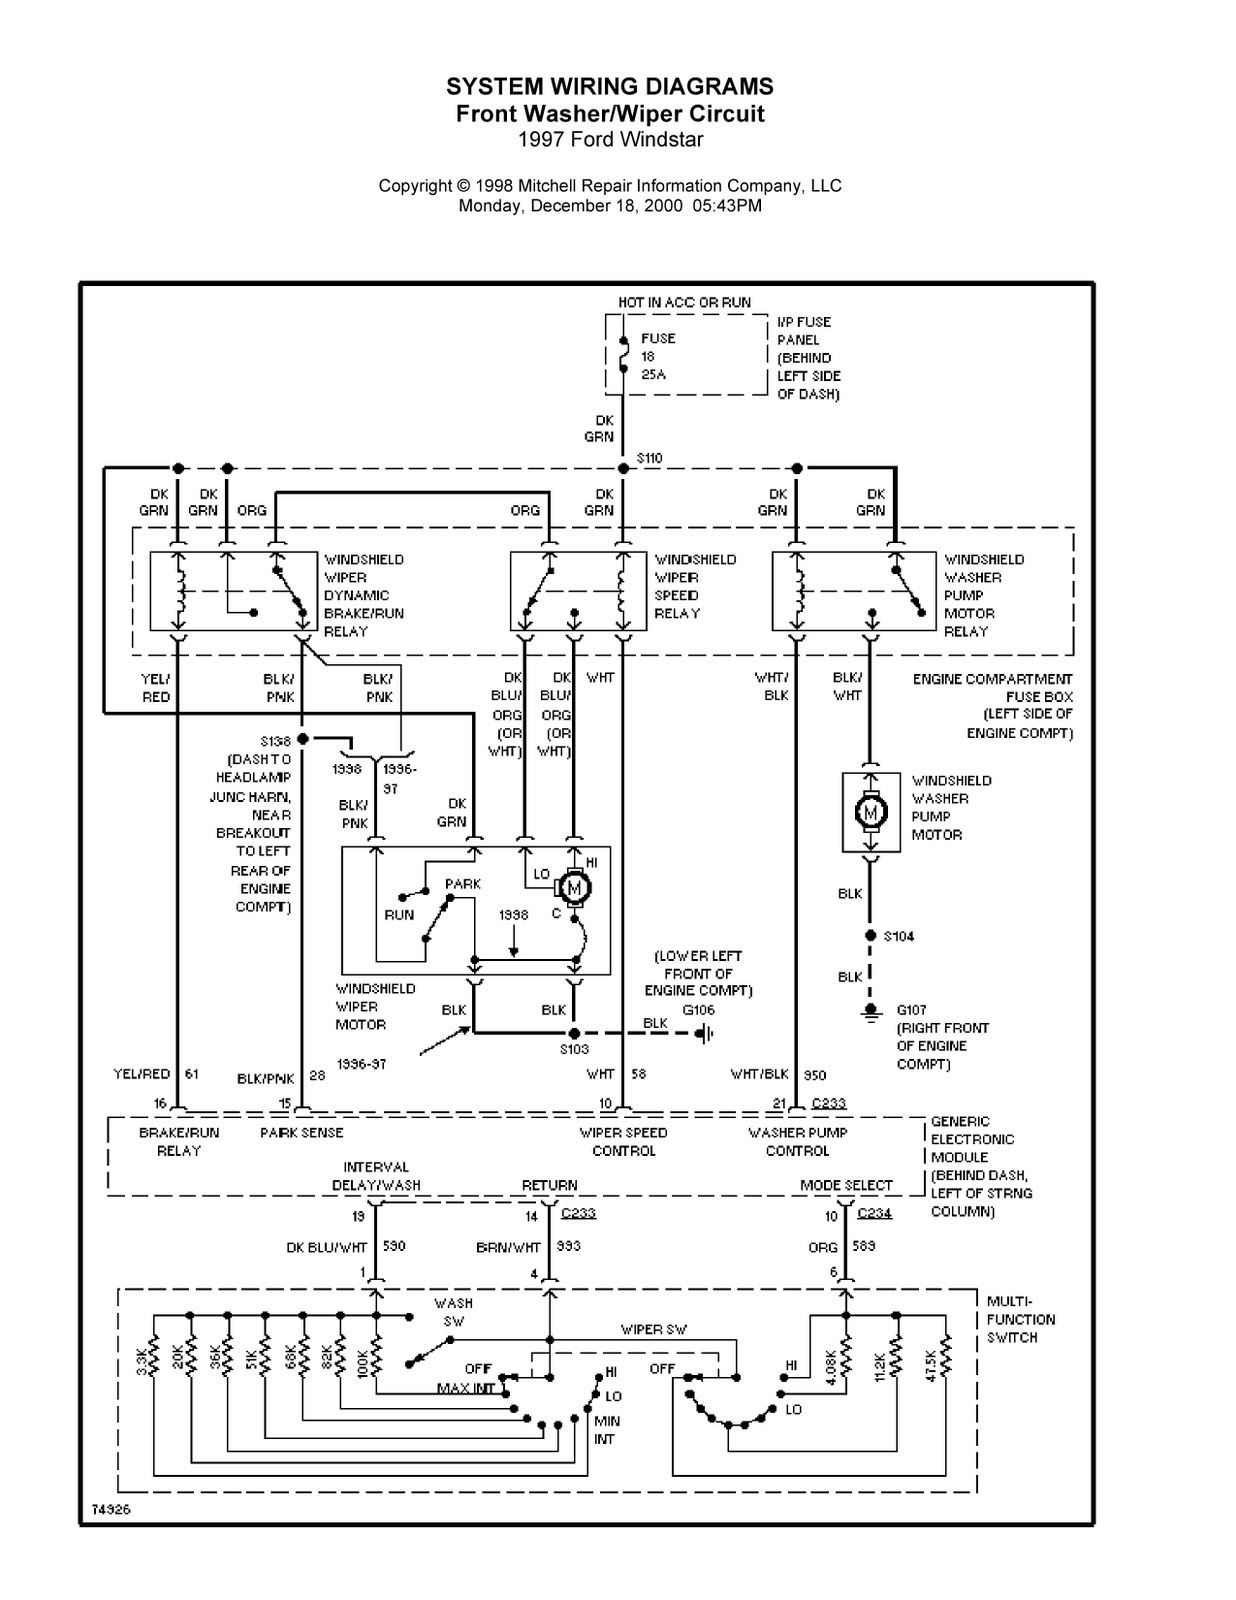 0051 1997 ford windstar complete system wiring diagrams wiring 1997 f350 wiring diagram at fashall.co